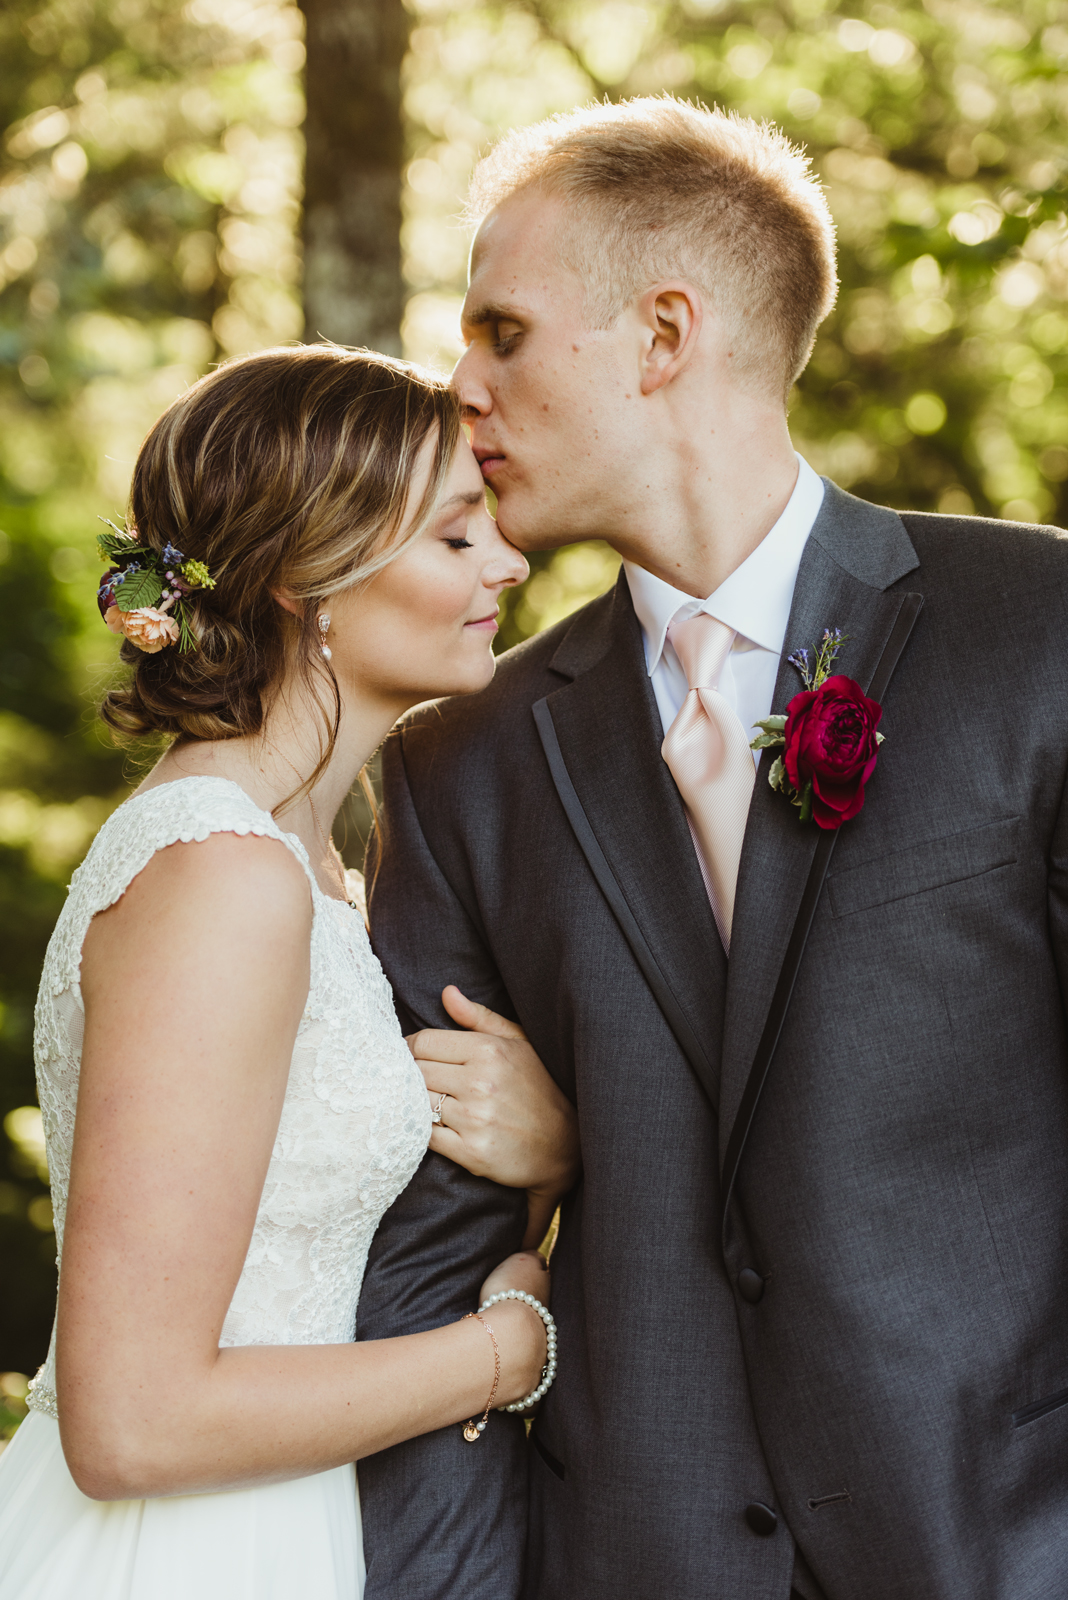 Beautiful back lit bride and groom portrait